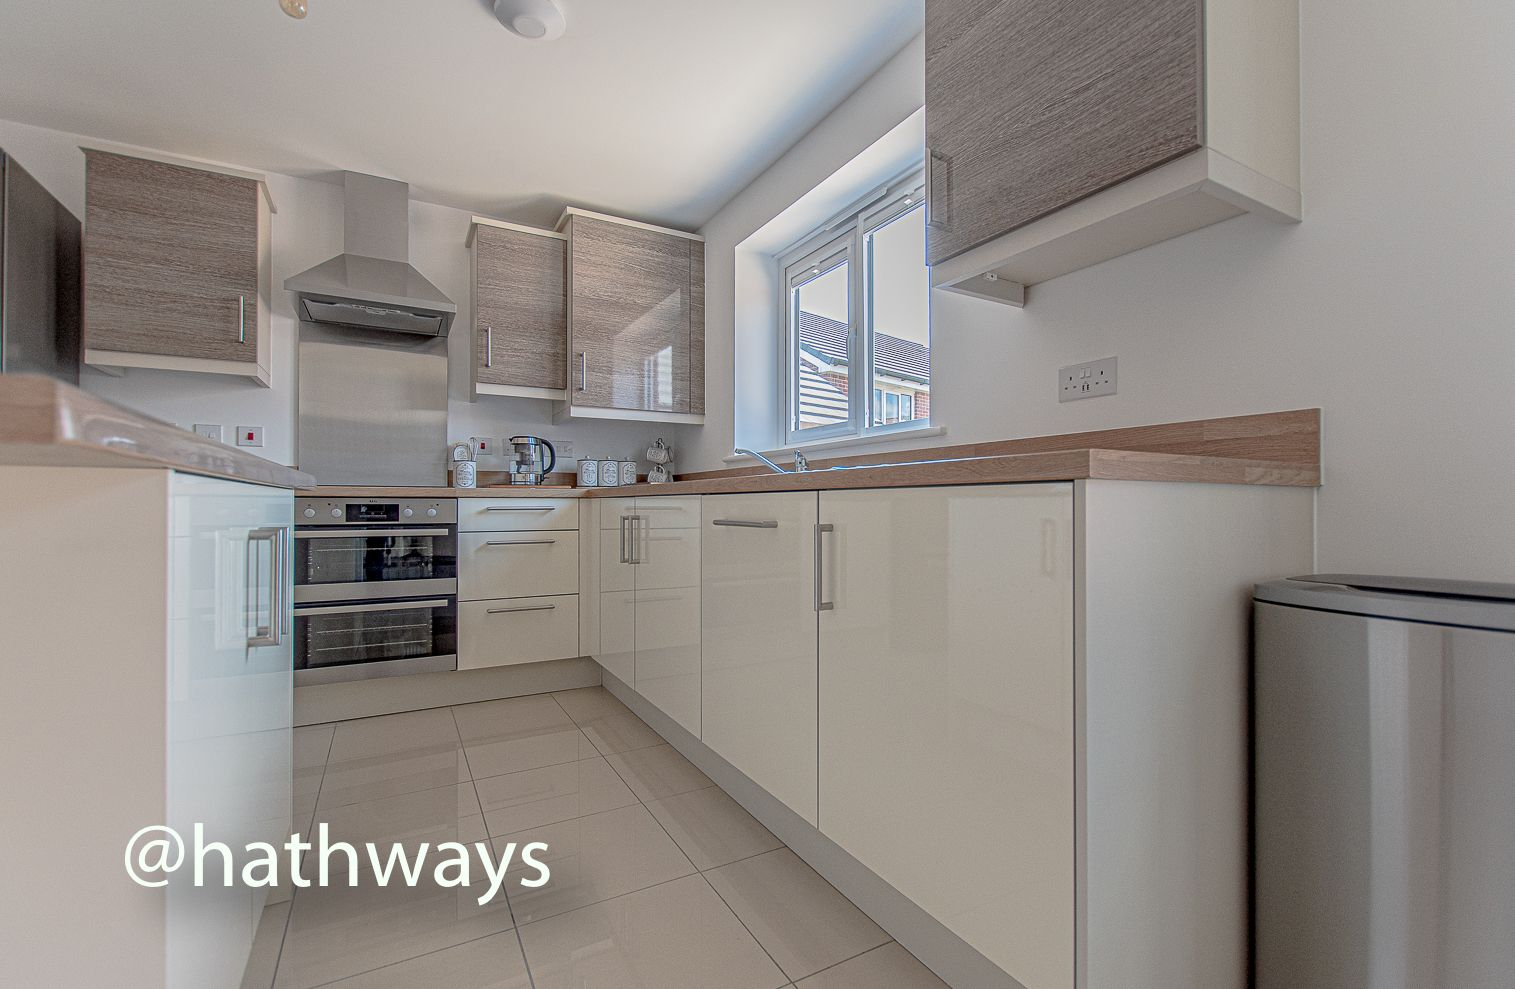 4 bed house for sale in Cwrt Celyn 12